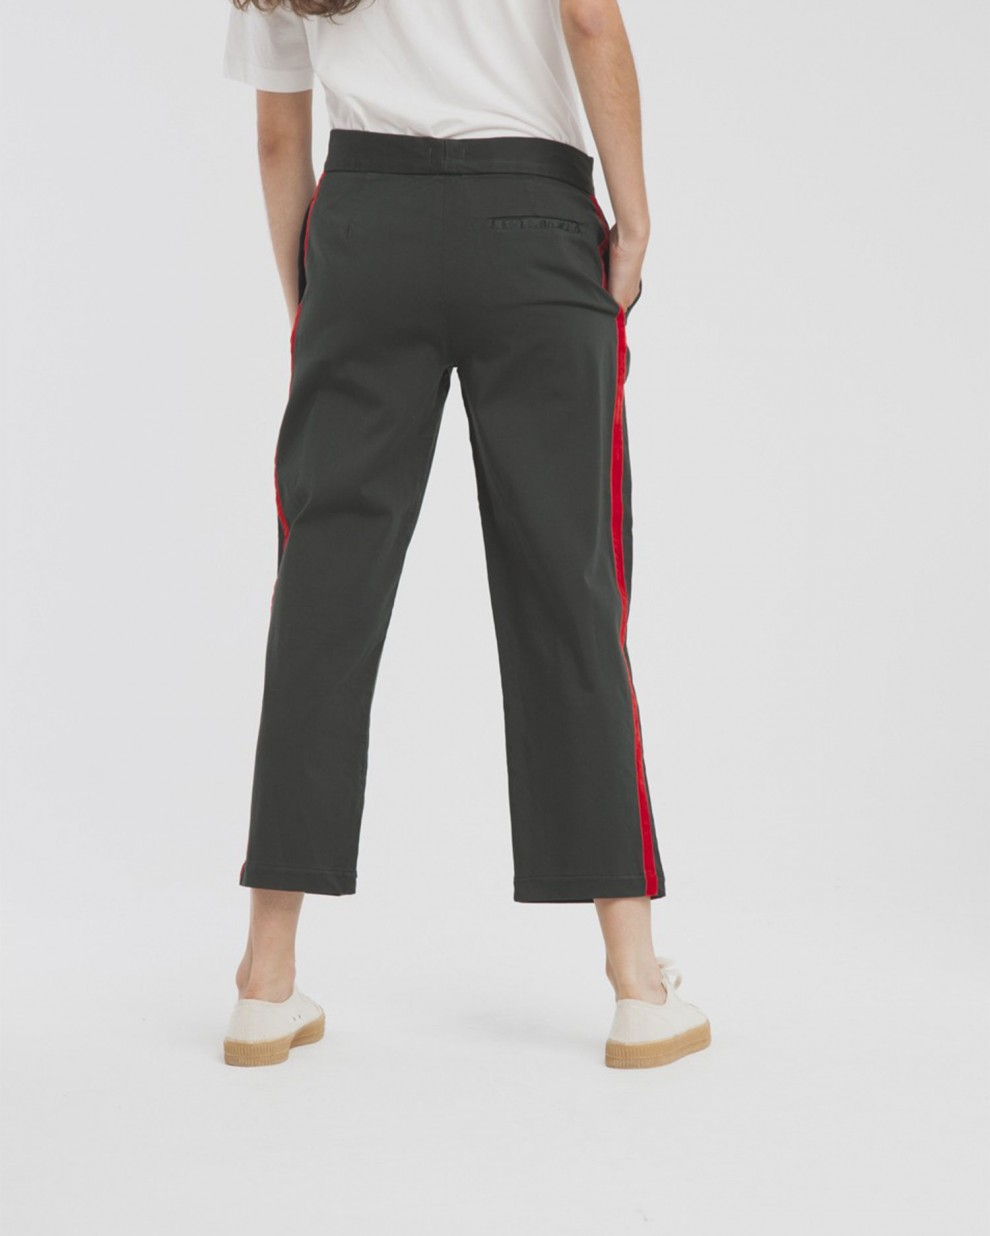 Green Lateral Lines Thai Pant